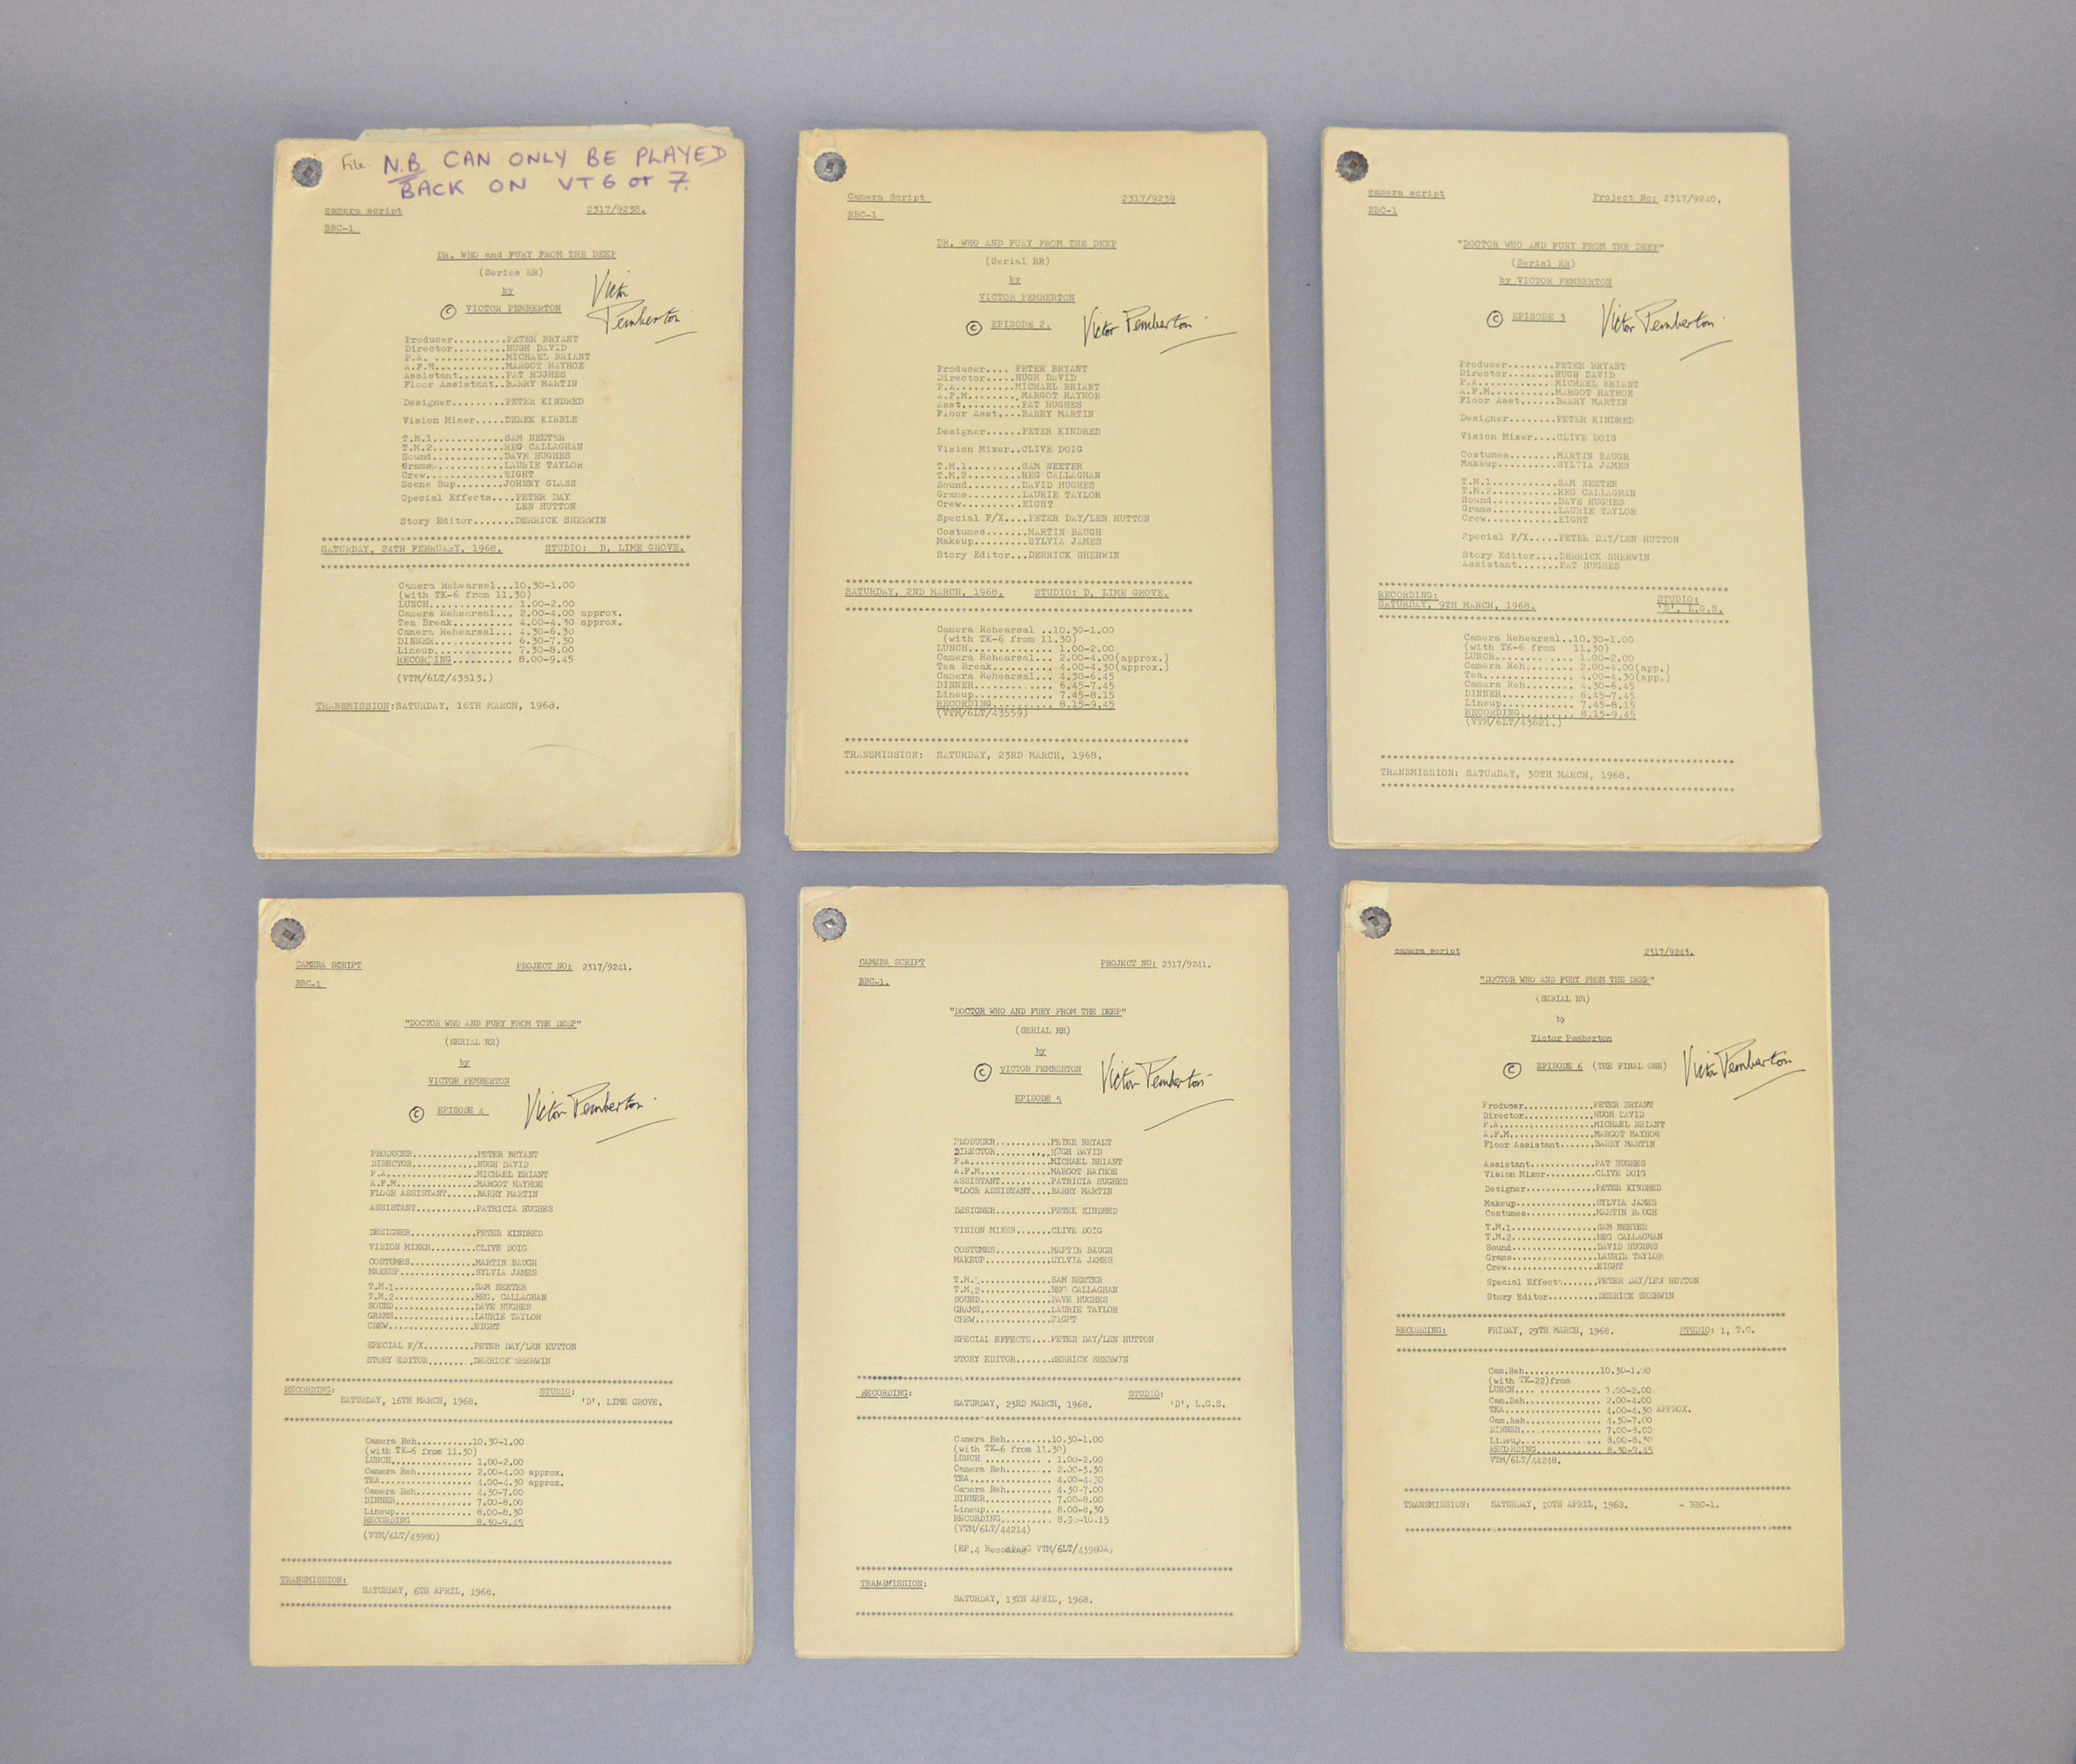 Doctor Who (Dr Who) full set of 6 original camera scripts from the missing 1968 Dr Who episode -